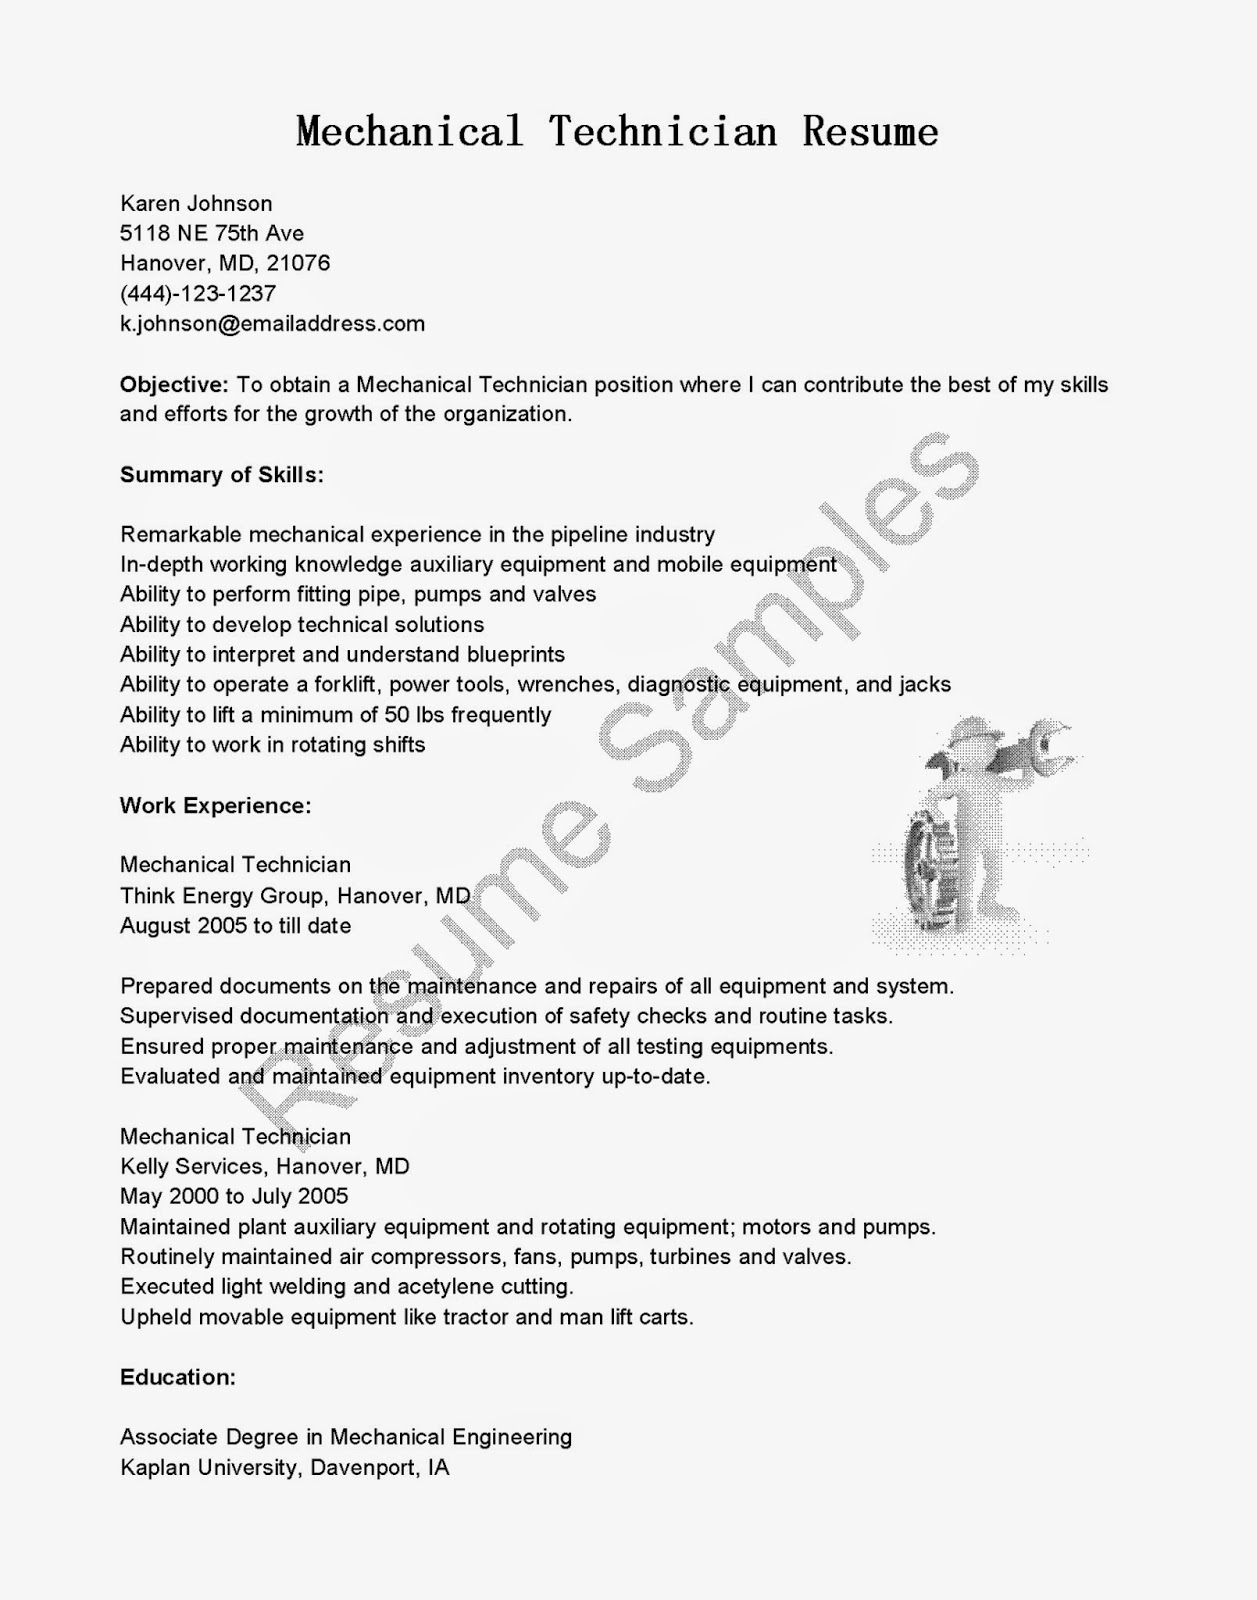 Automotive Mechanical Engineer Cover Letter | Sample Resume For An ...